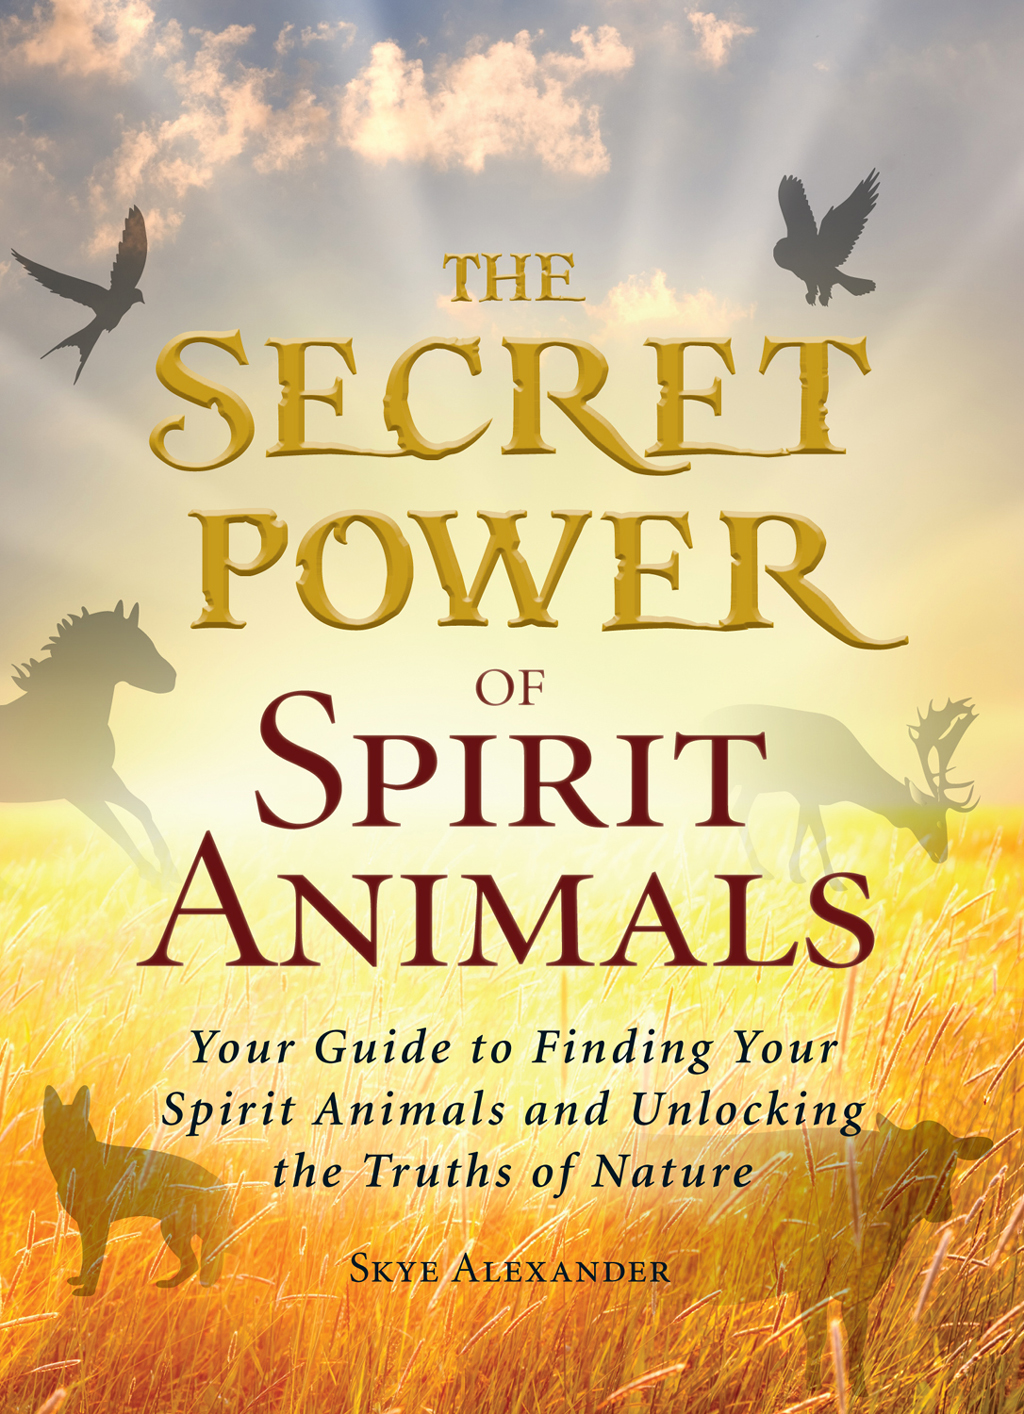 The Secret Power of Spirit Animals Your Guide to Finding Your Spirit Animals and Unlocking the Truths of Nature